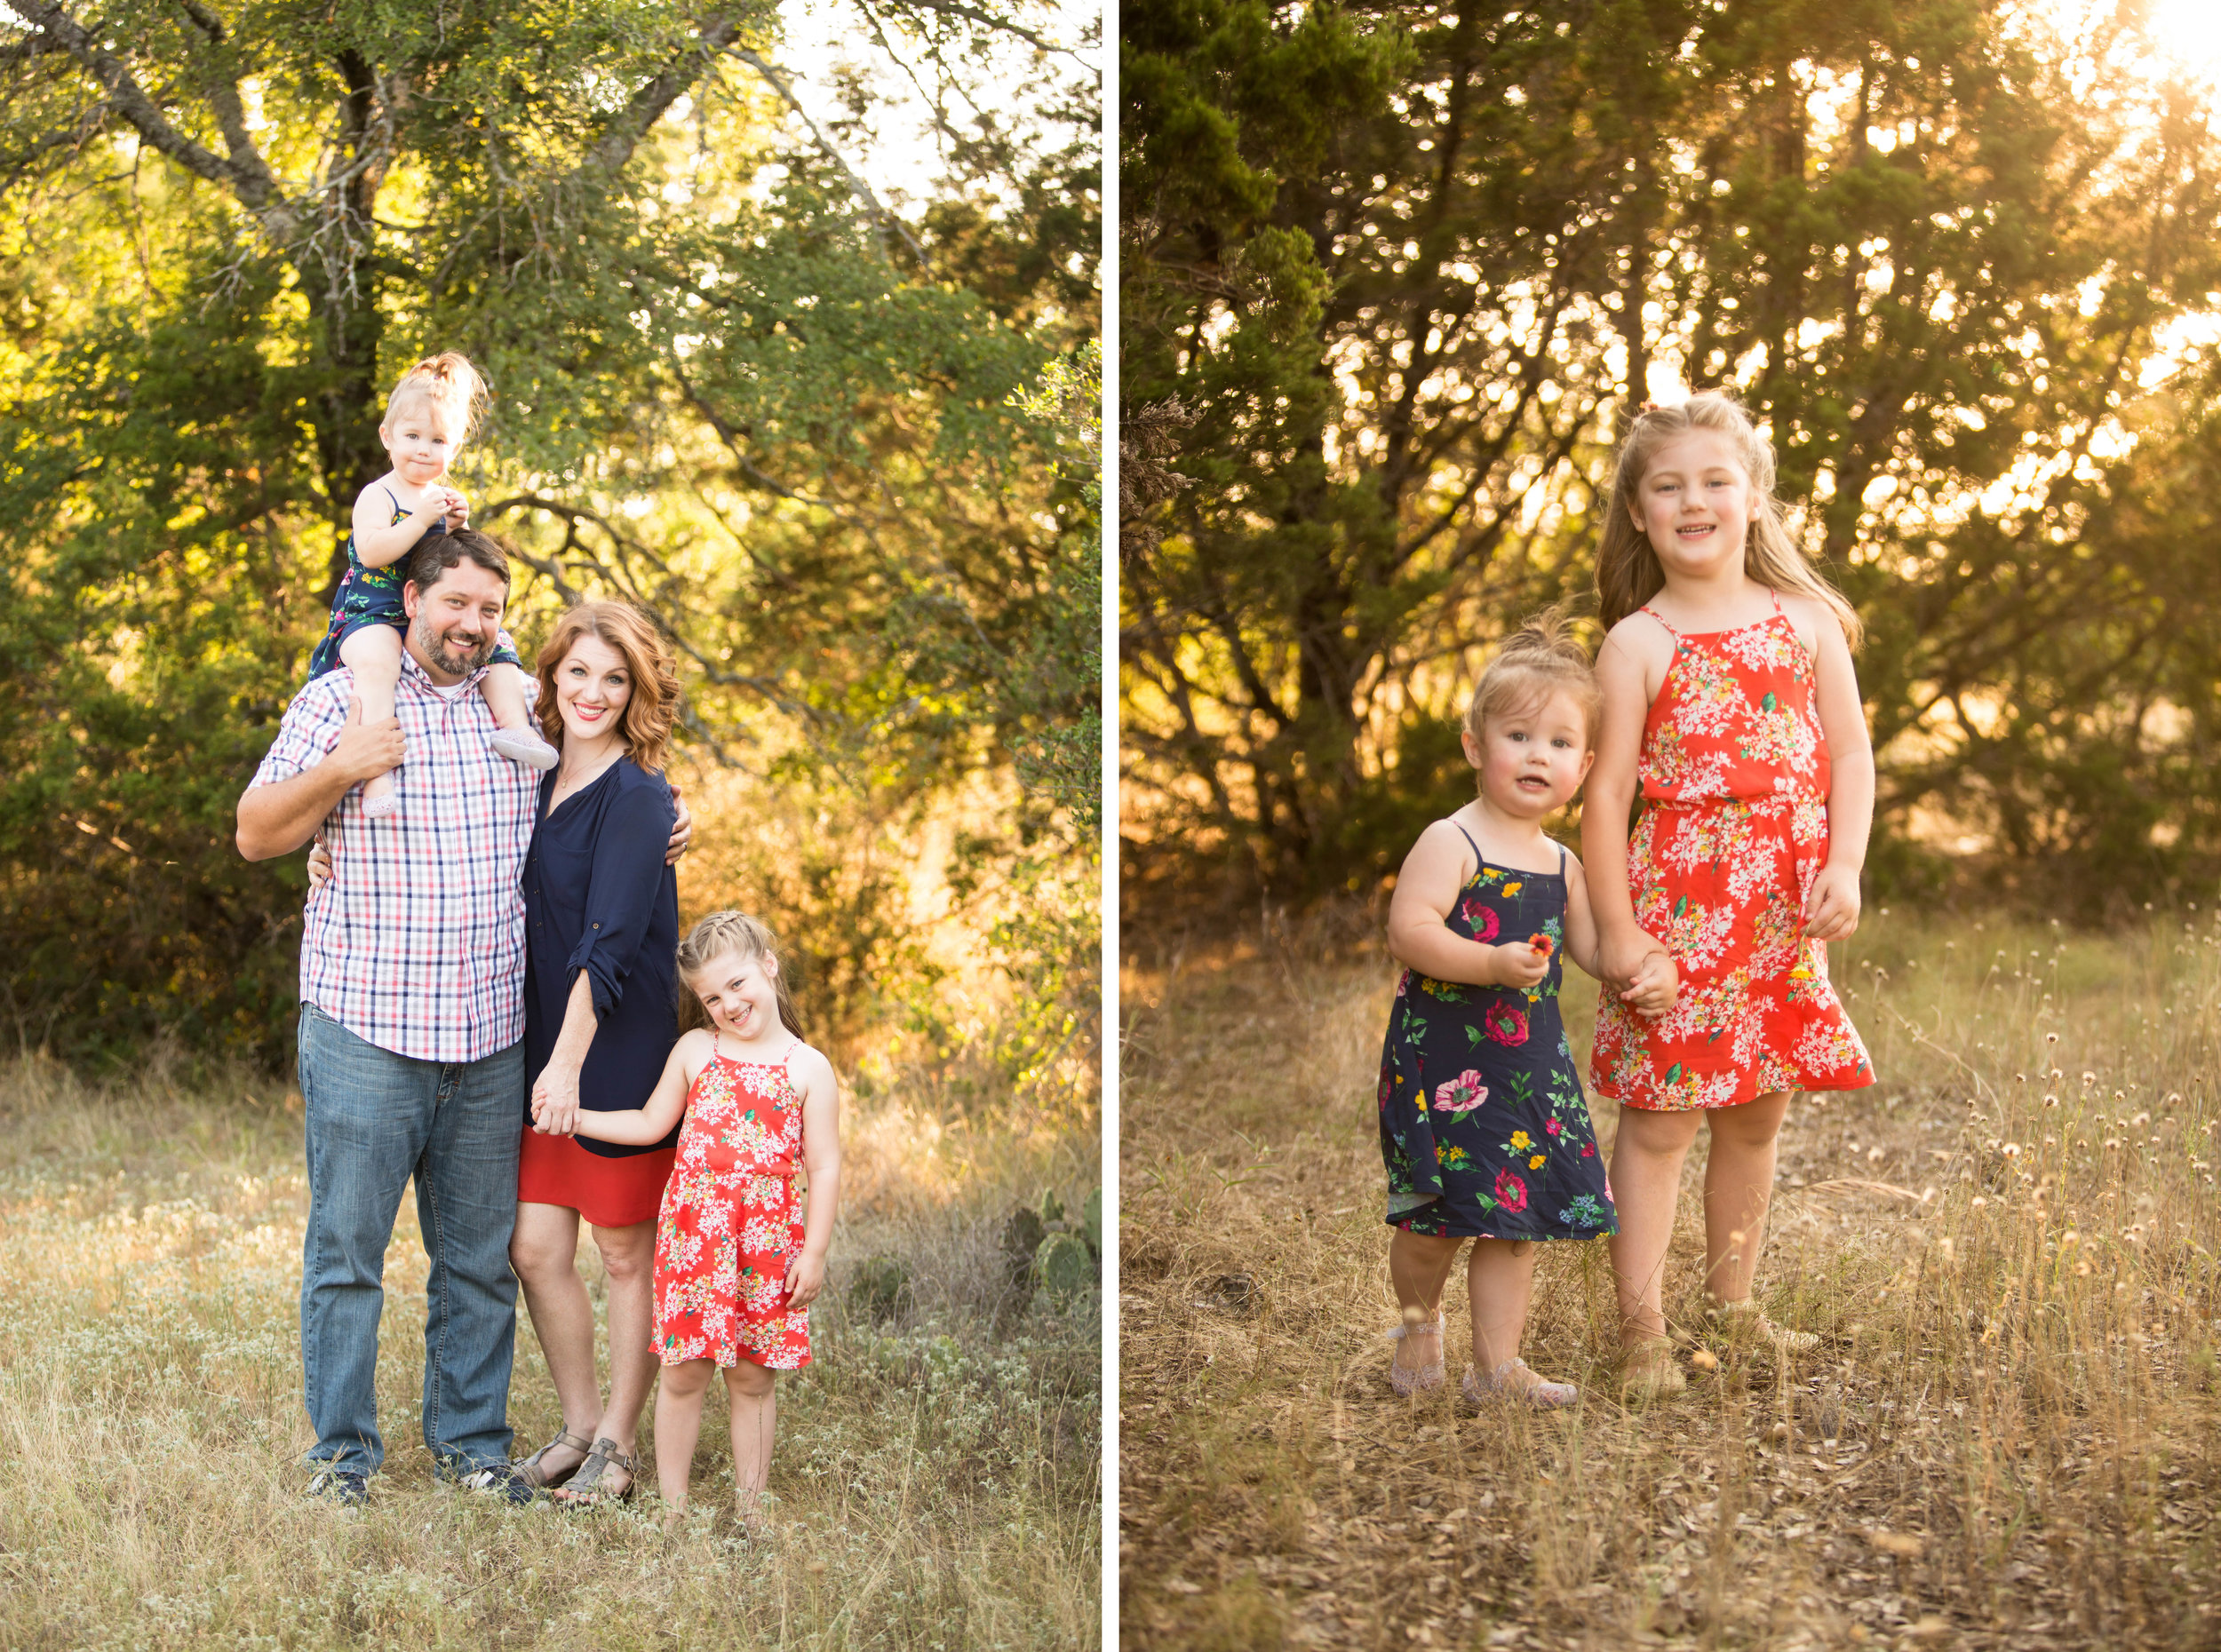 Marble_Falls_Family_Photographer_Jenna_Petty_11.jpg